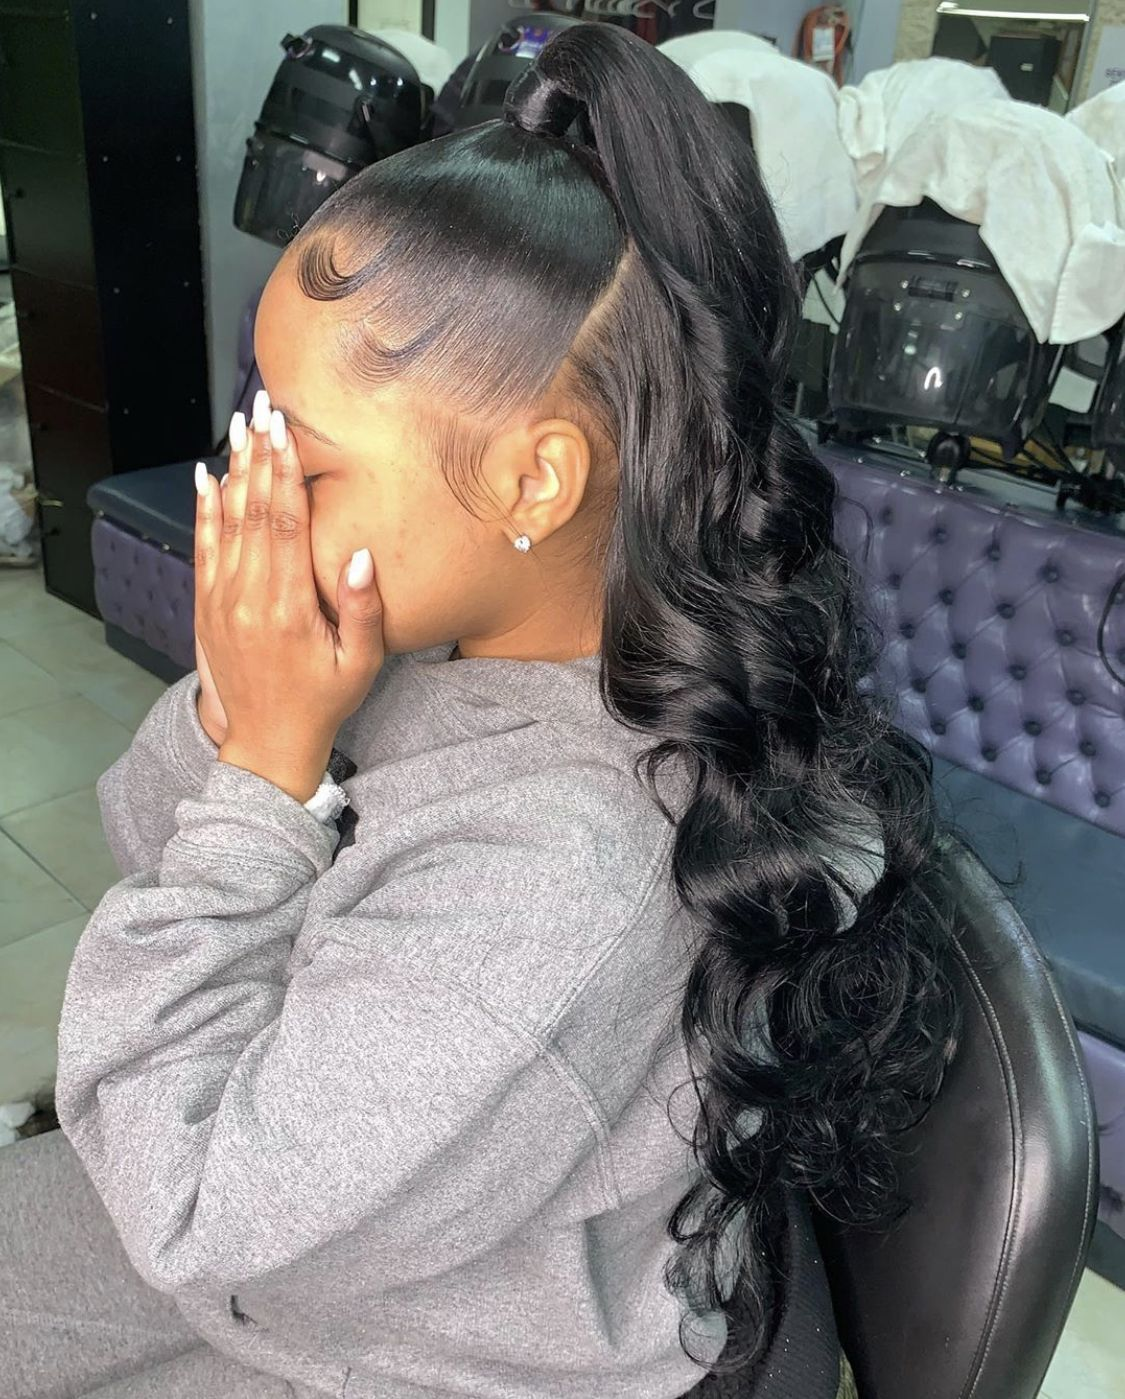 Pin By Karyn Rice On Save In 2020 Weave Ponytail Hairstyles Braids For Black Hair Weave Hairstyles